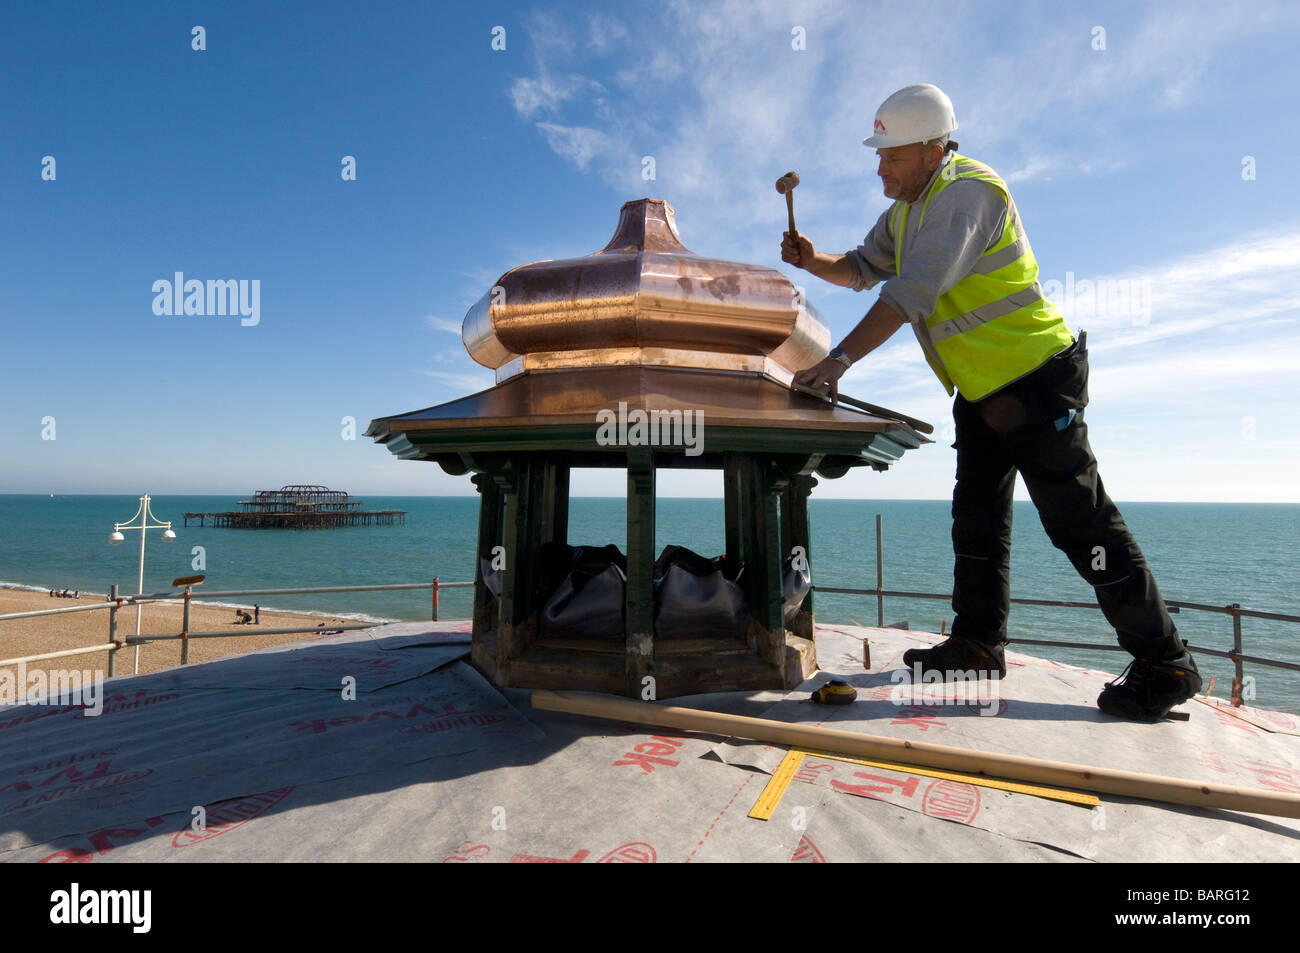 A coppersmith restores the cupola of Brighton Bandstand on the seafront - Stock Image